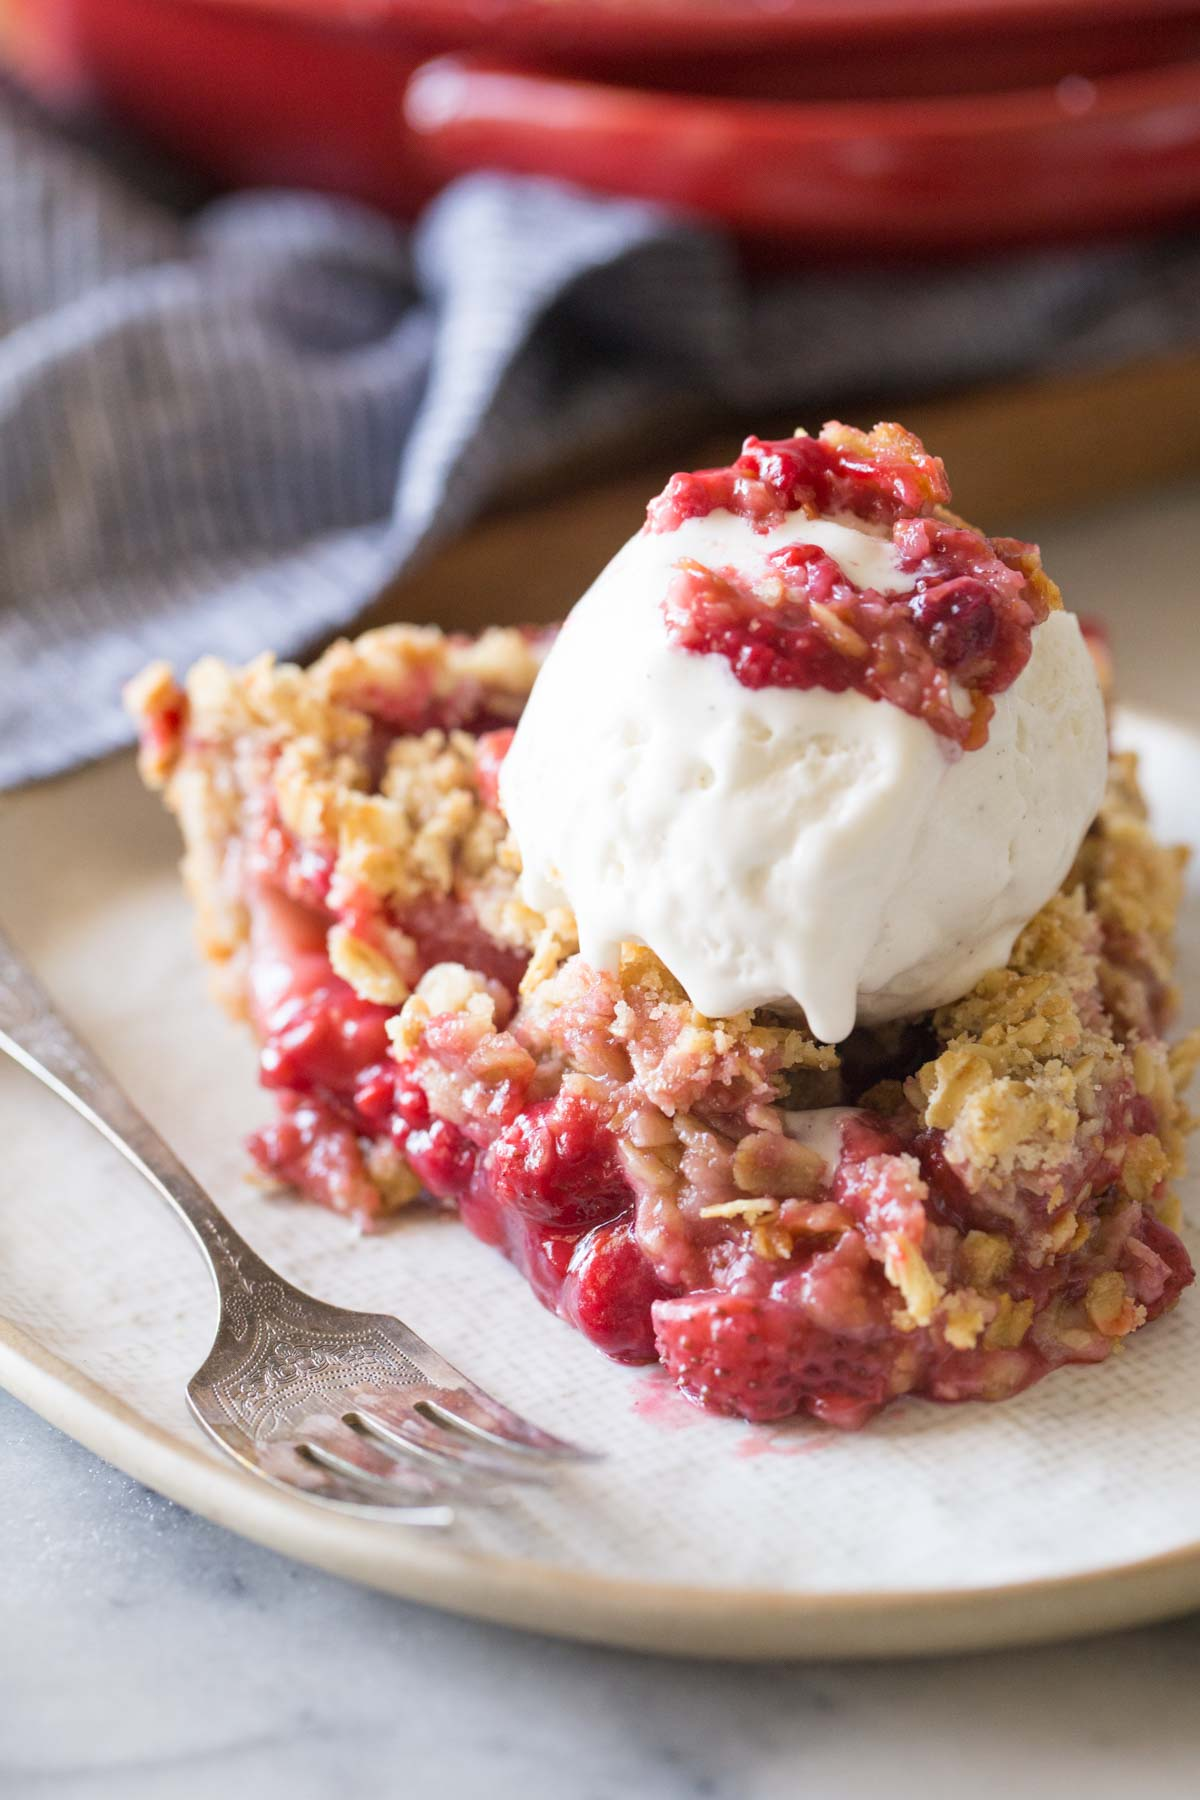 Close up shot of a slice of Berry Crumble Pie topped with a scoop of vanilla ice cream.